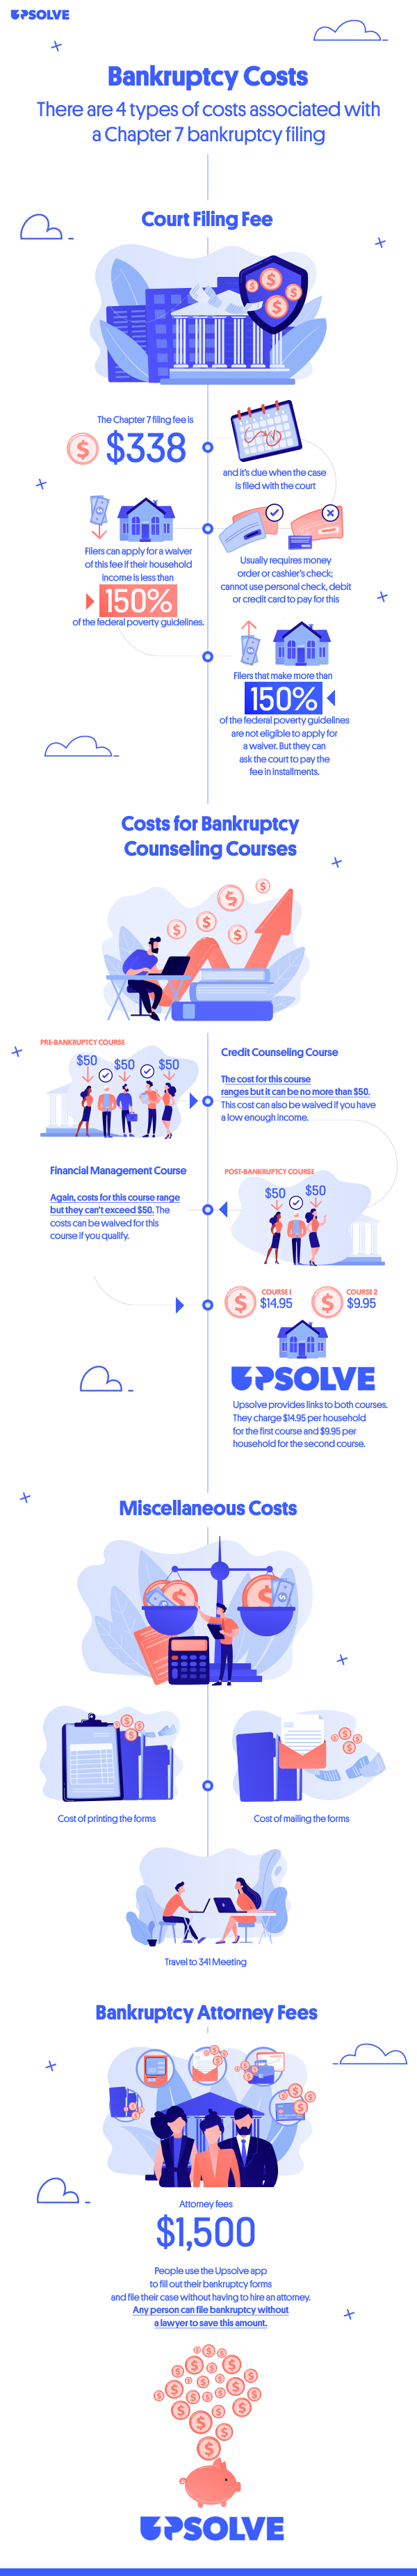 Infographic showing the different types of costs the filer incurs in a Chapter 7 bankruptcy.